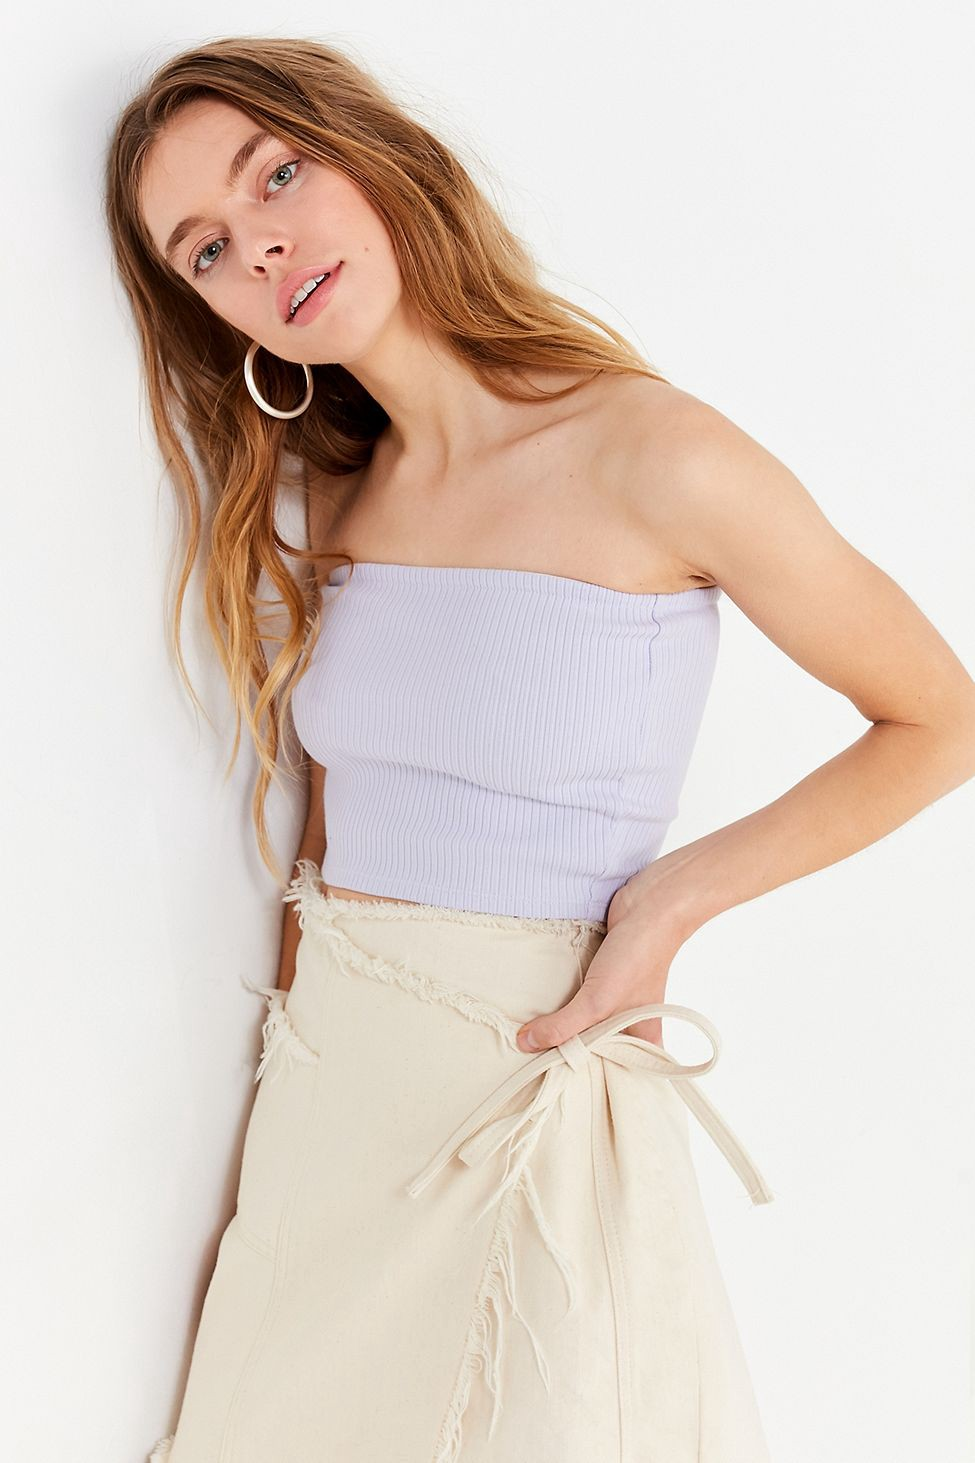 075c0b91ff Urban Outfitters Uo Hallie Ribbed Knit Tube Top - Yellow Xs ...